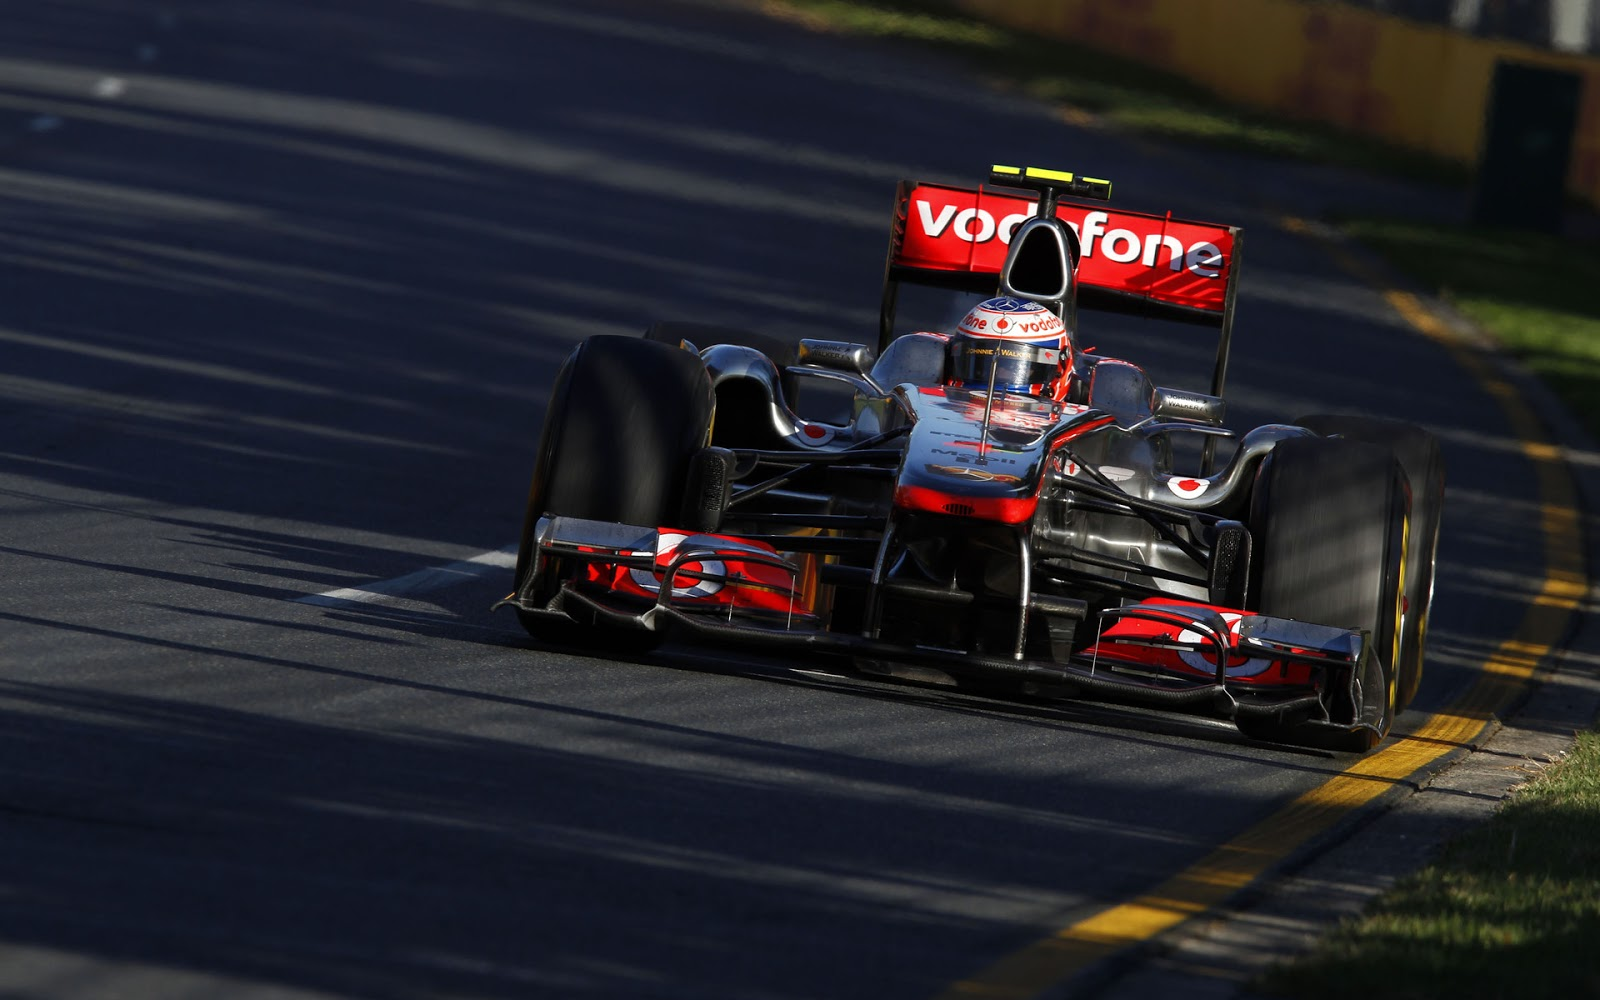 F1: Wallpapers Of Beautiful Cars: Formula One Wallpapers